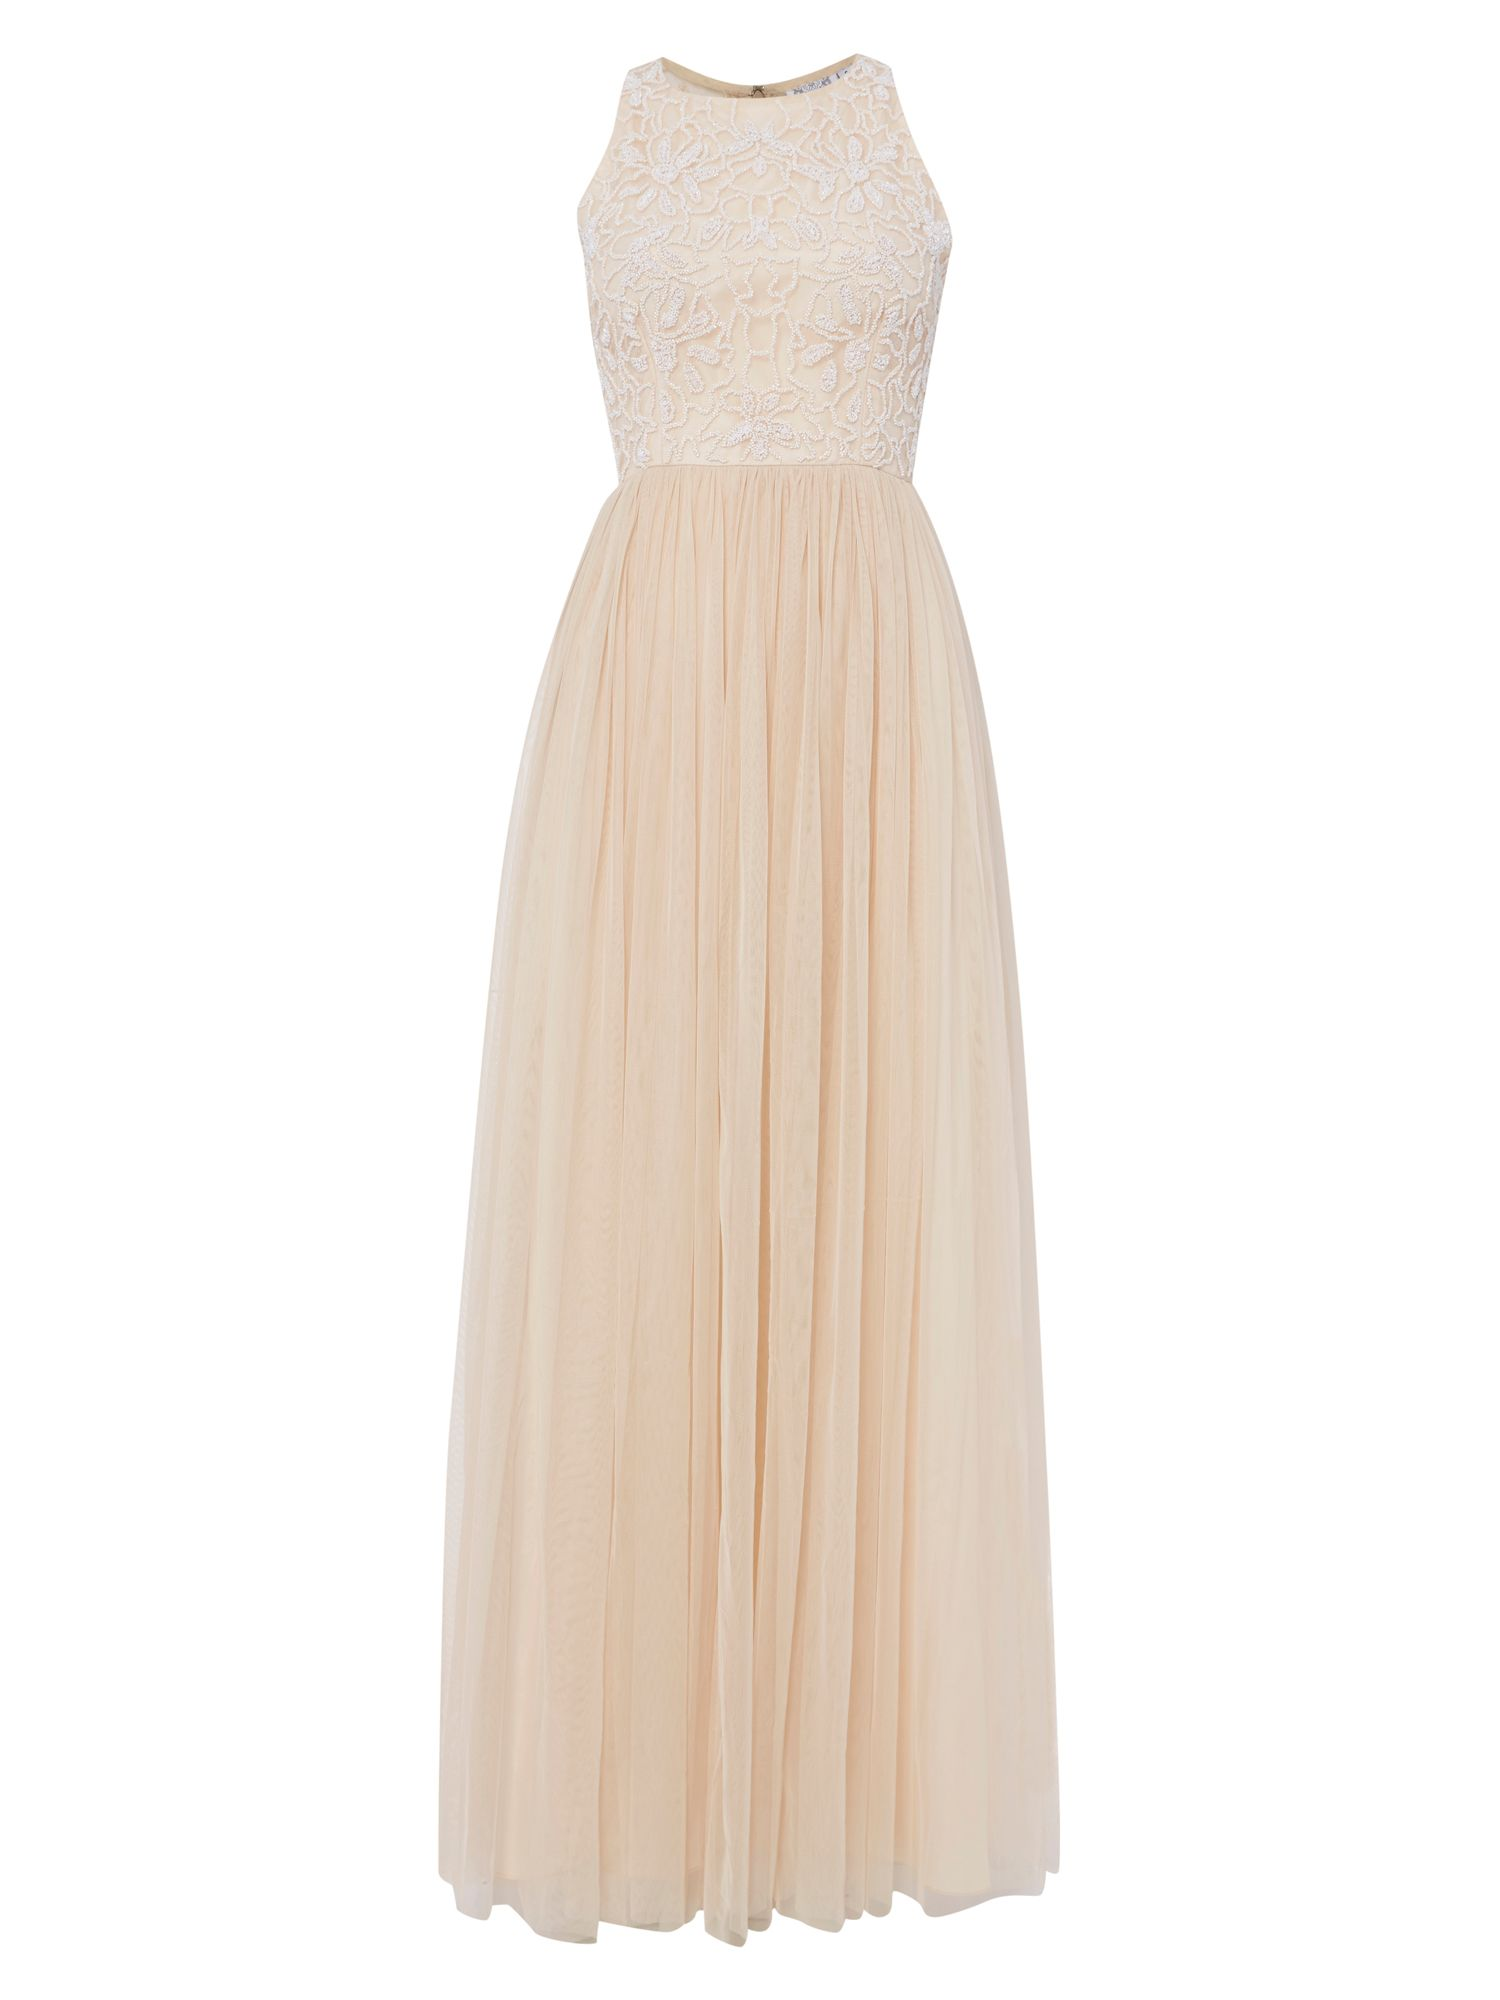 RAISHMA Ice Peach Glass Beaded Gown, Peach